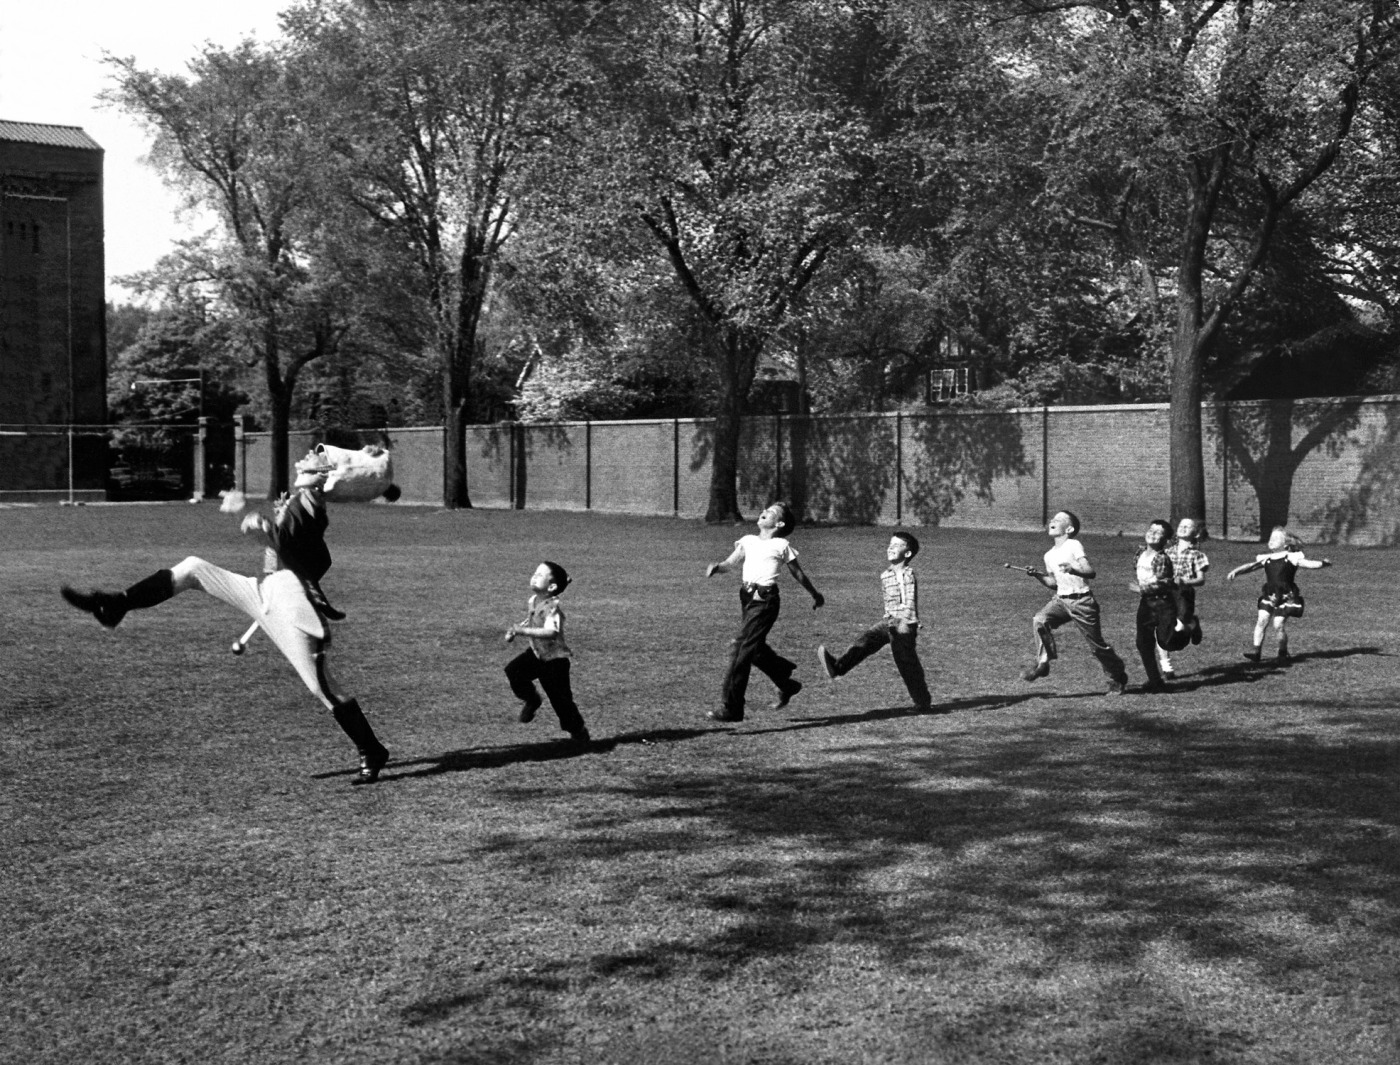 ten moments when time stood still campari sofa uniformed drum major for the univ of mi ing band practicing his high kicking prance as he leads a line of seven admiring children who are all trying